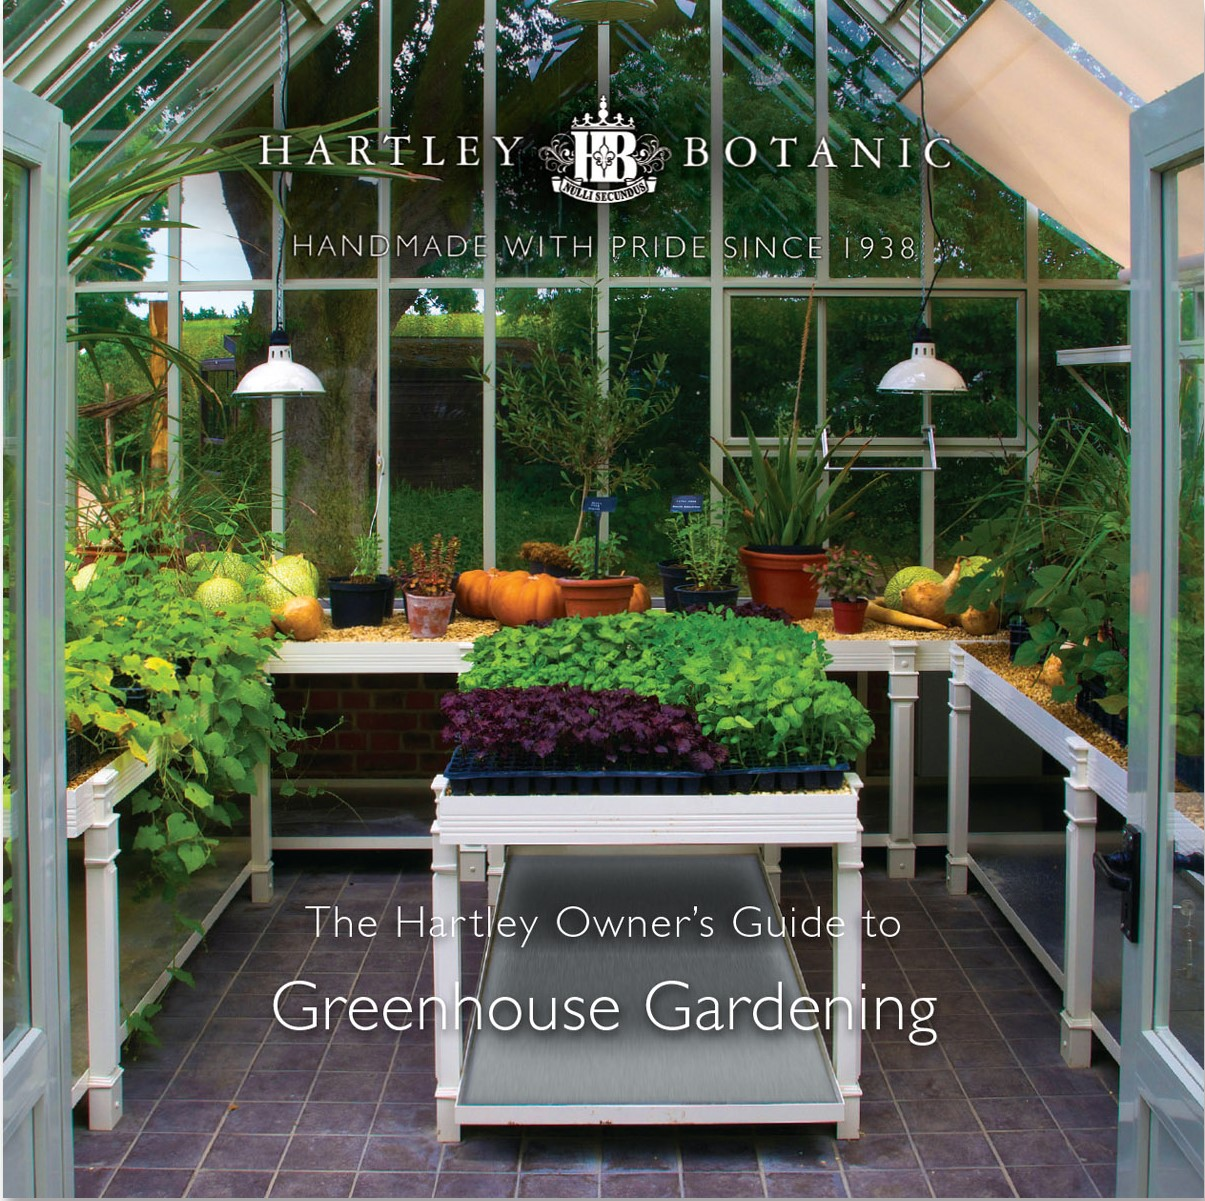 Hartley Guide To Greenhouse Growing (Hartley Botanic/PA)